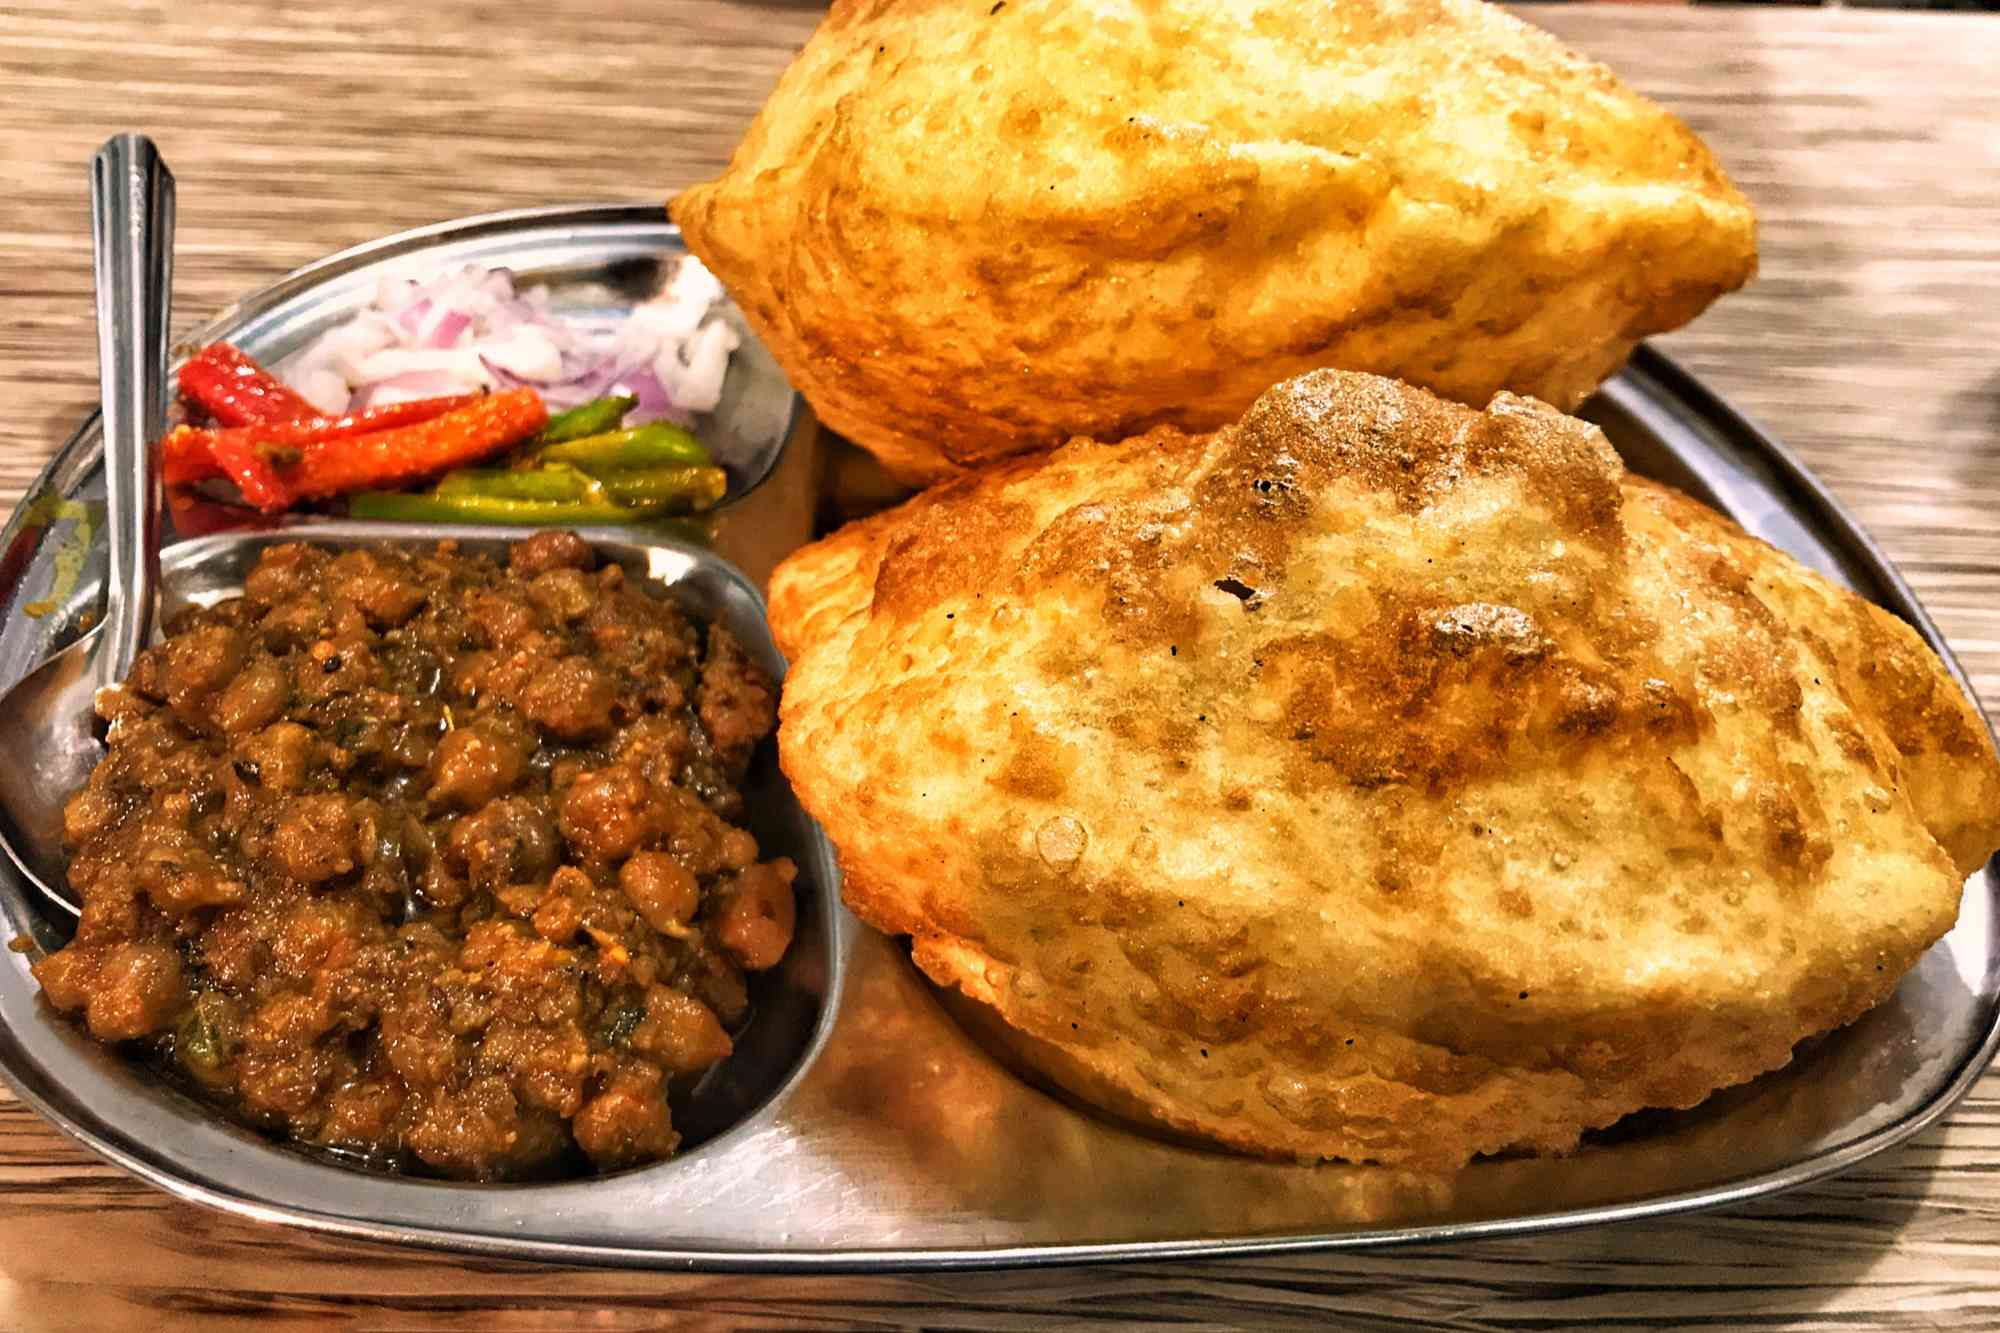 Chole bature on a metal tray with channa masala and pickled veggies